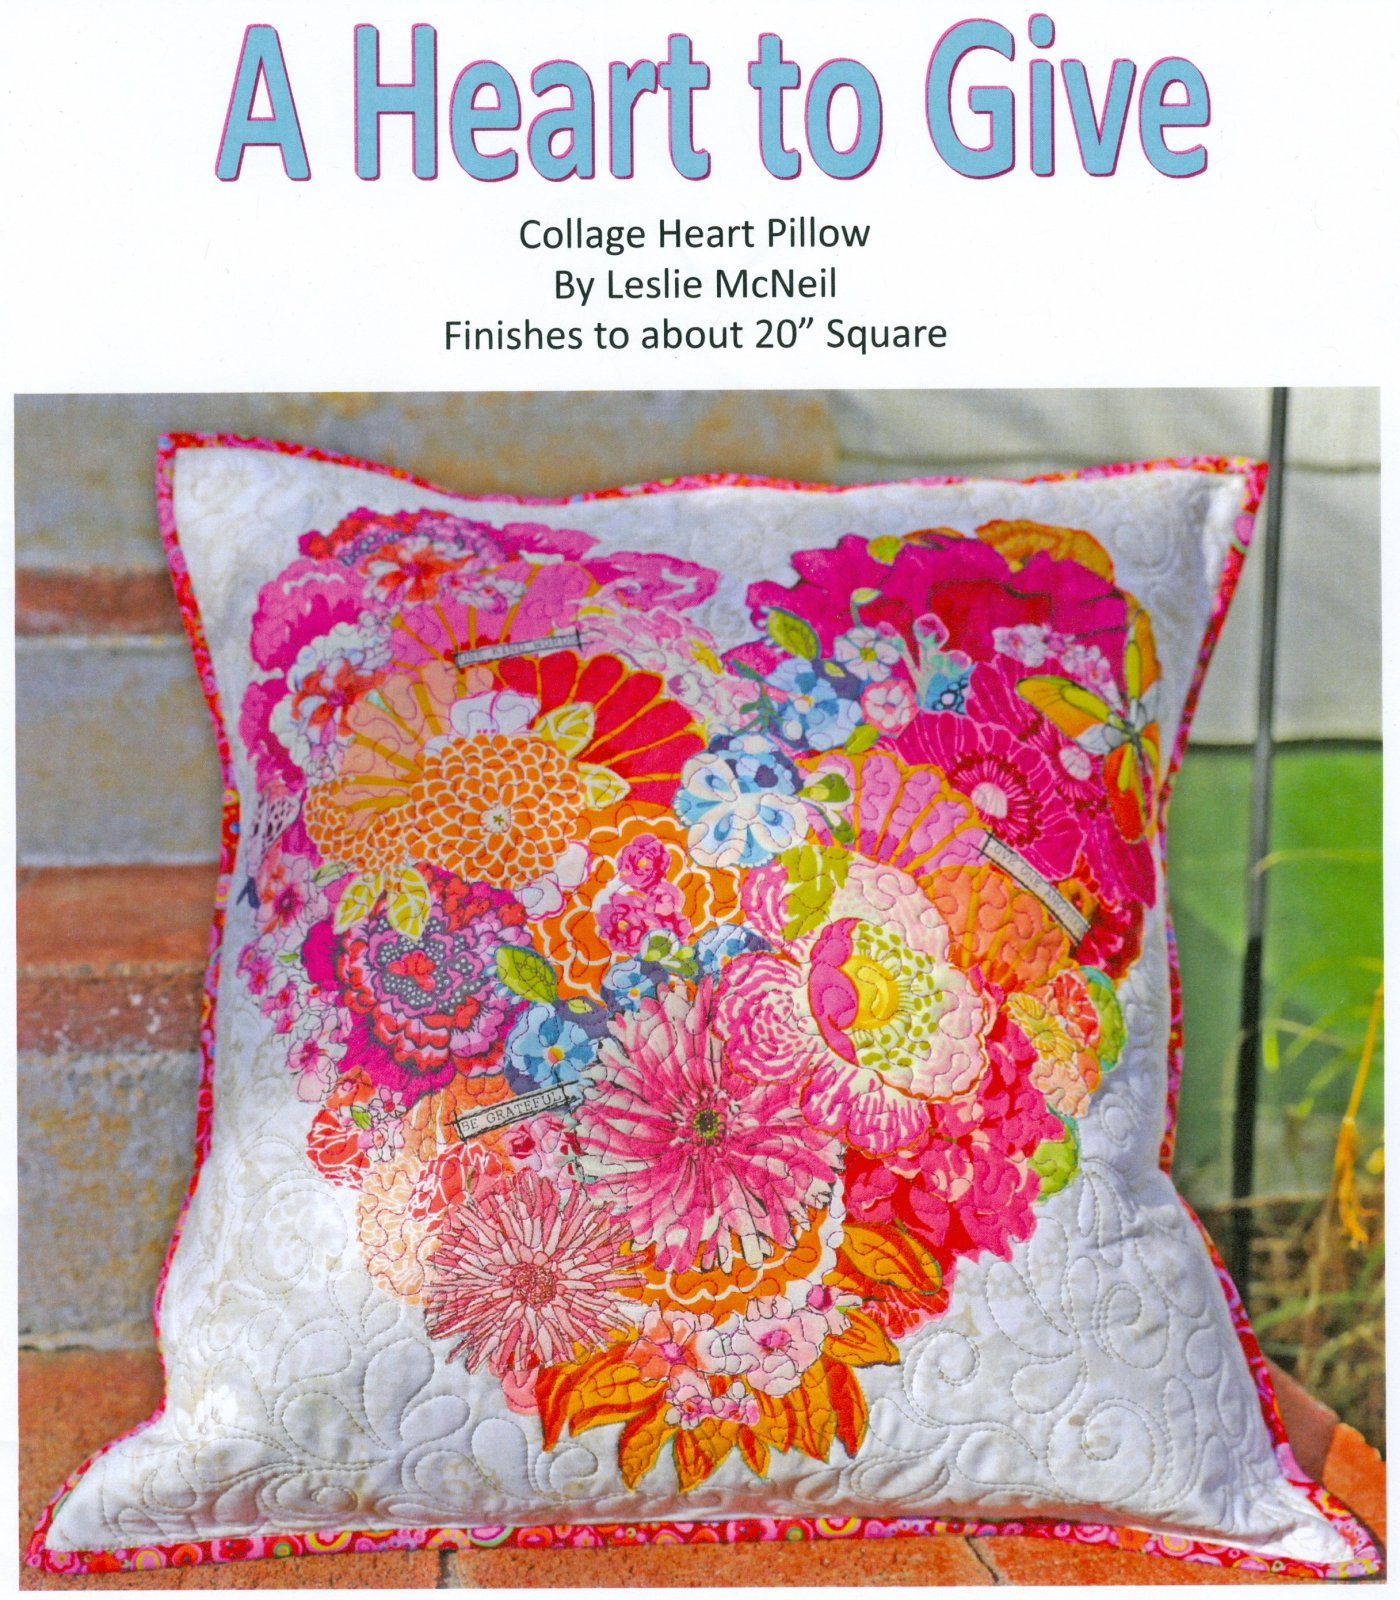 A Heart to Give Collage Pattern by Leslie McNeil